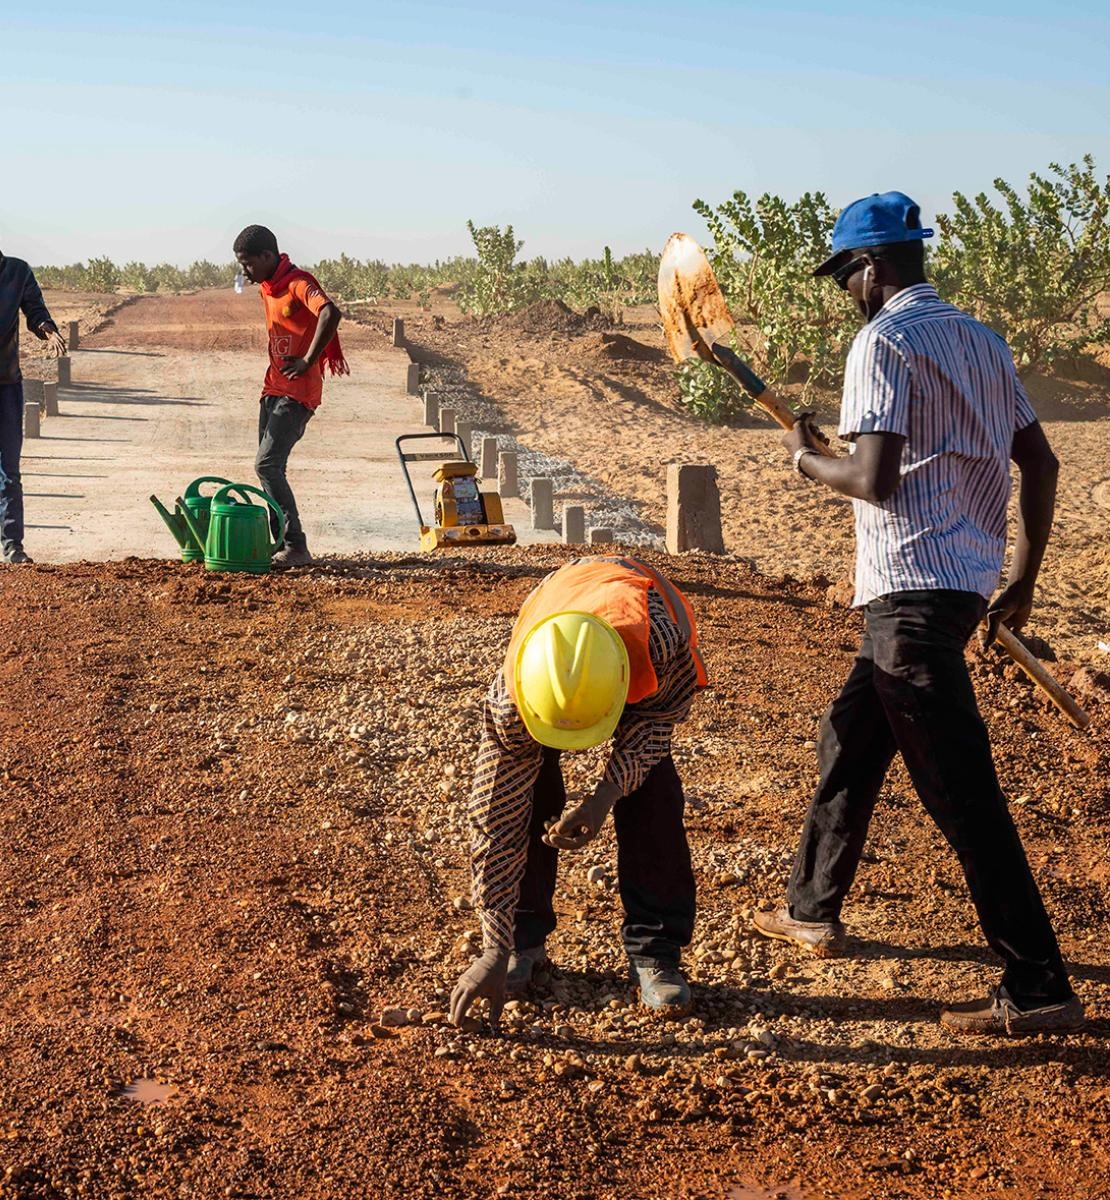 An image of four people working on a construction site in the desert.